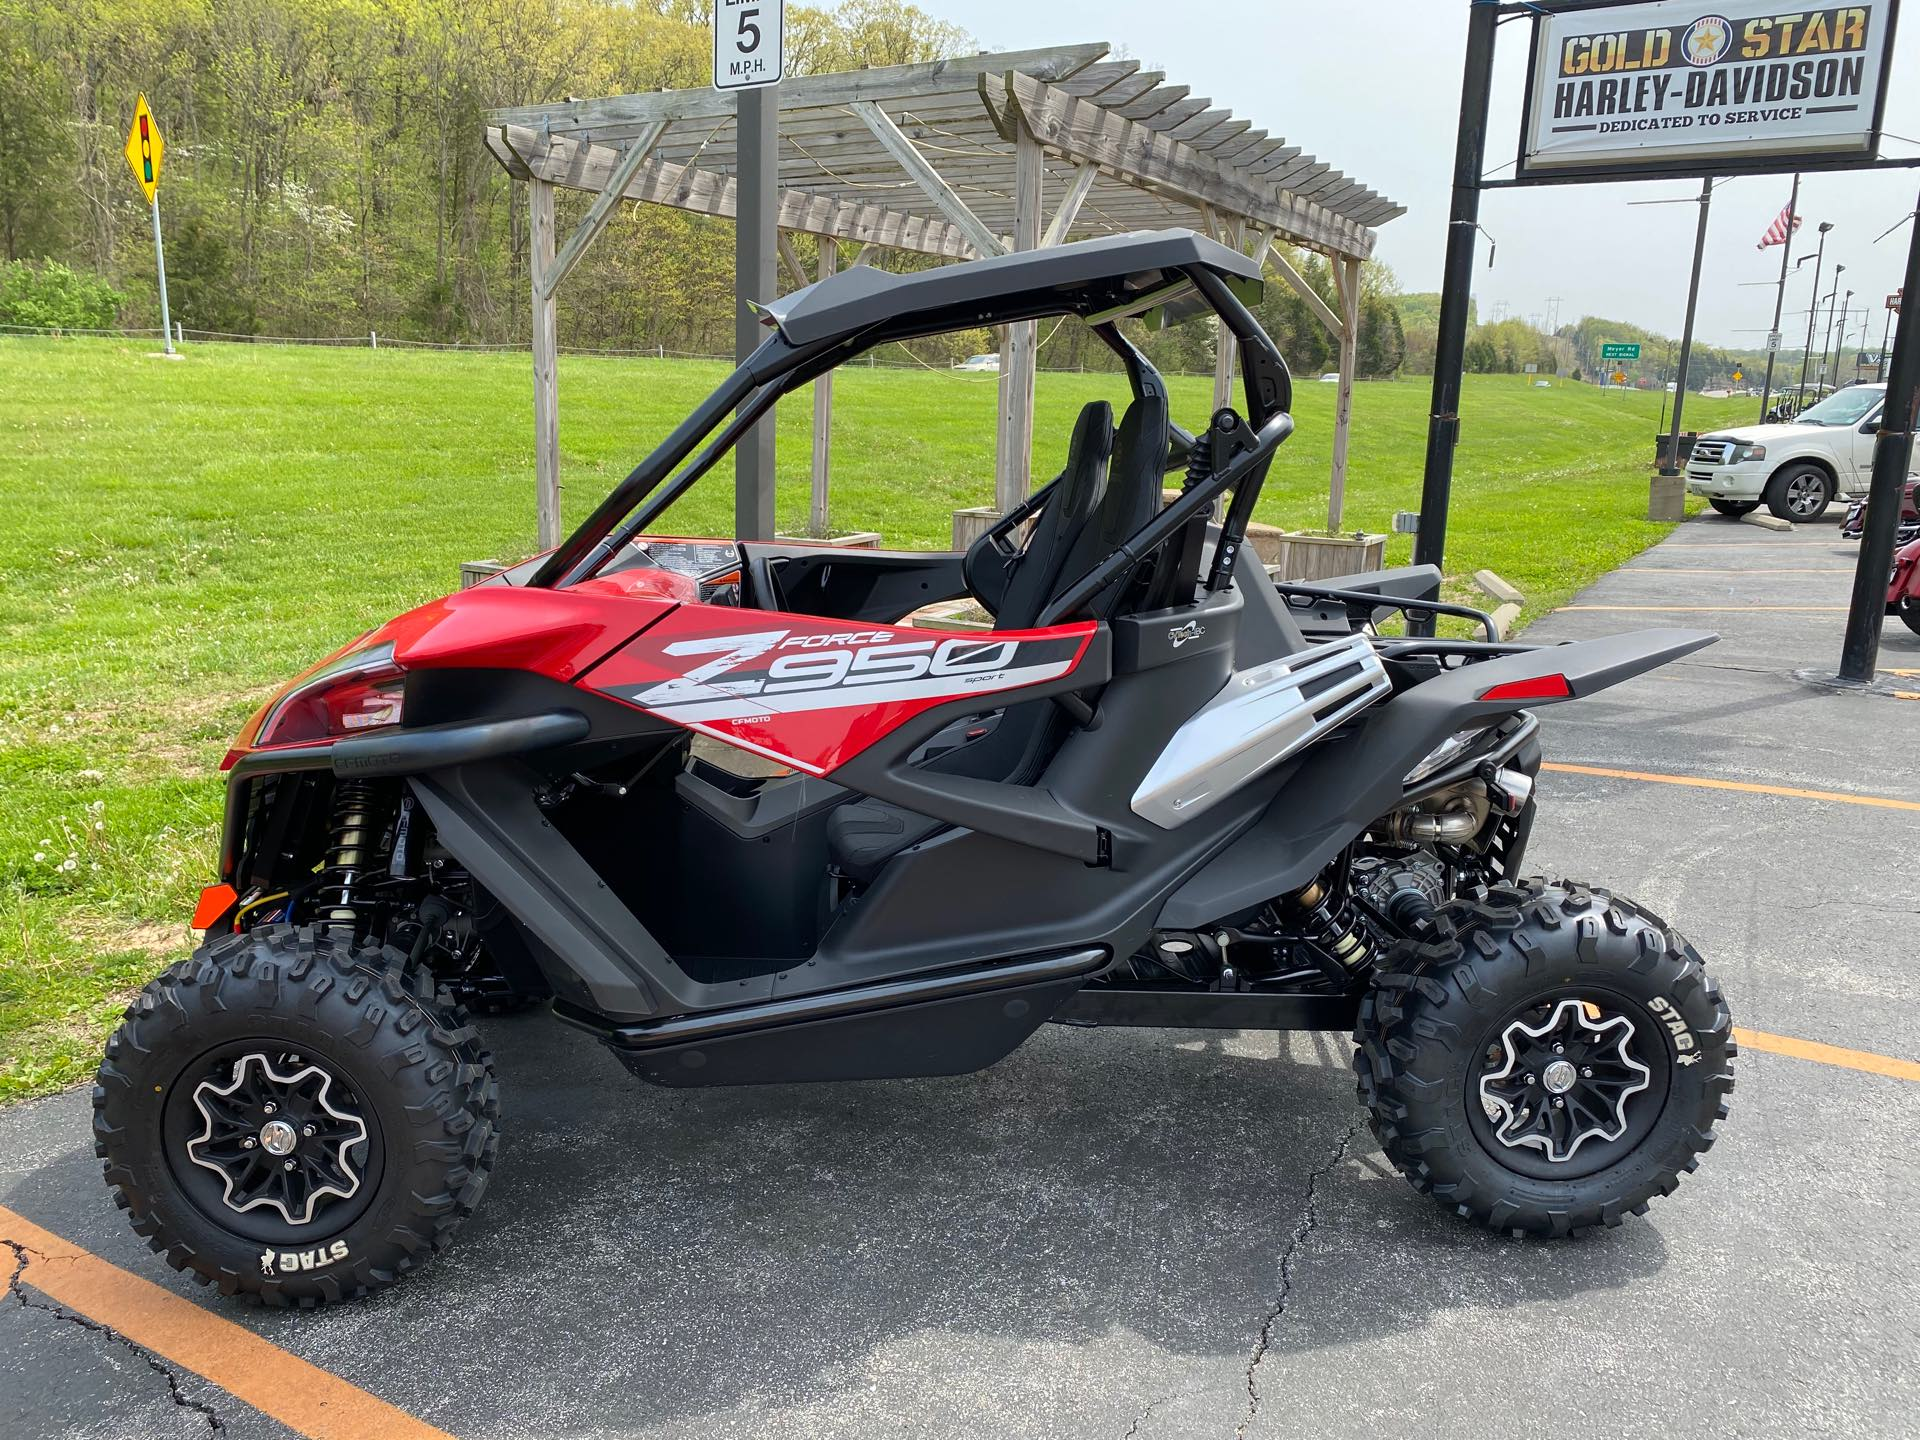 2021 CFMOTO ZFORCE 950 Sport at Gold Star Outdoors